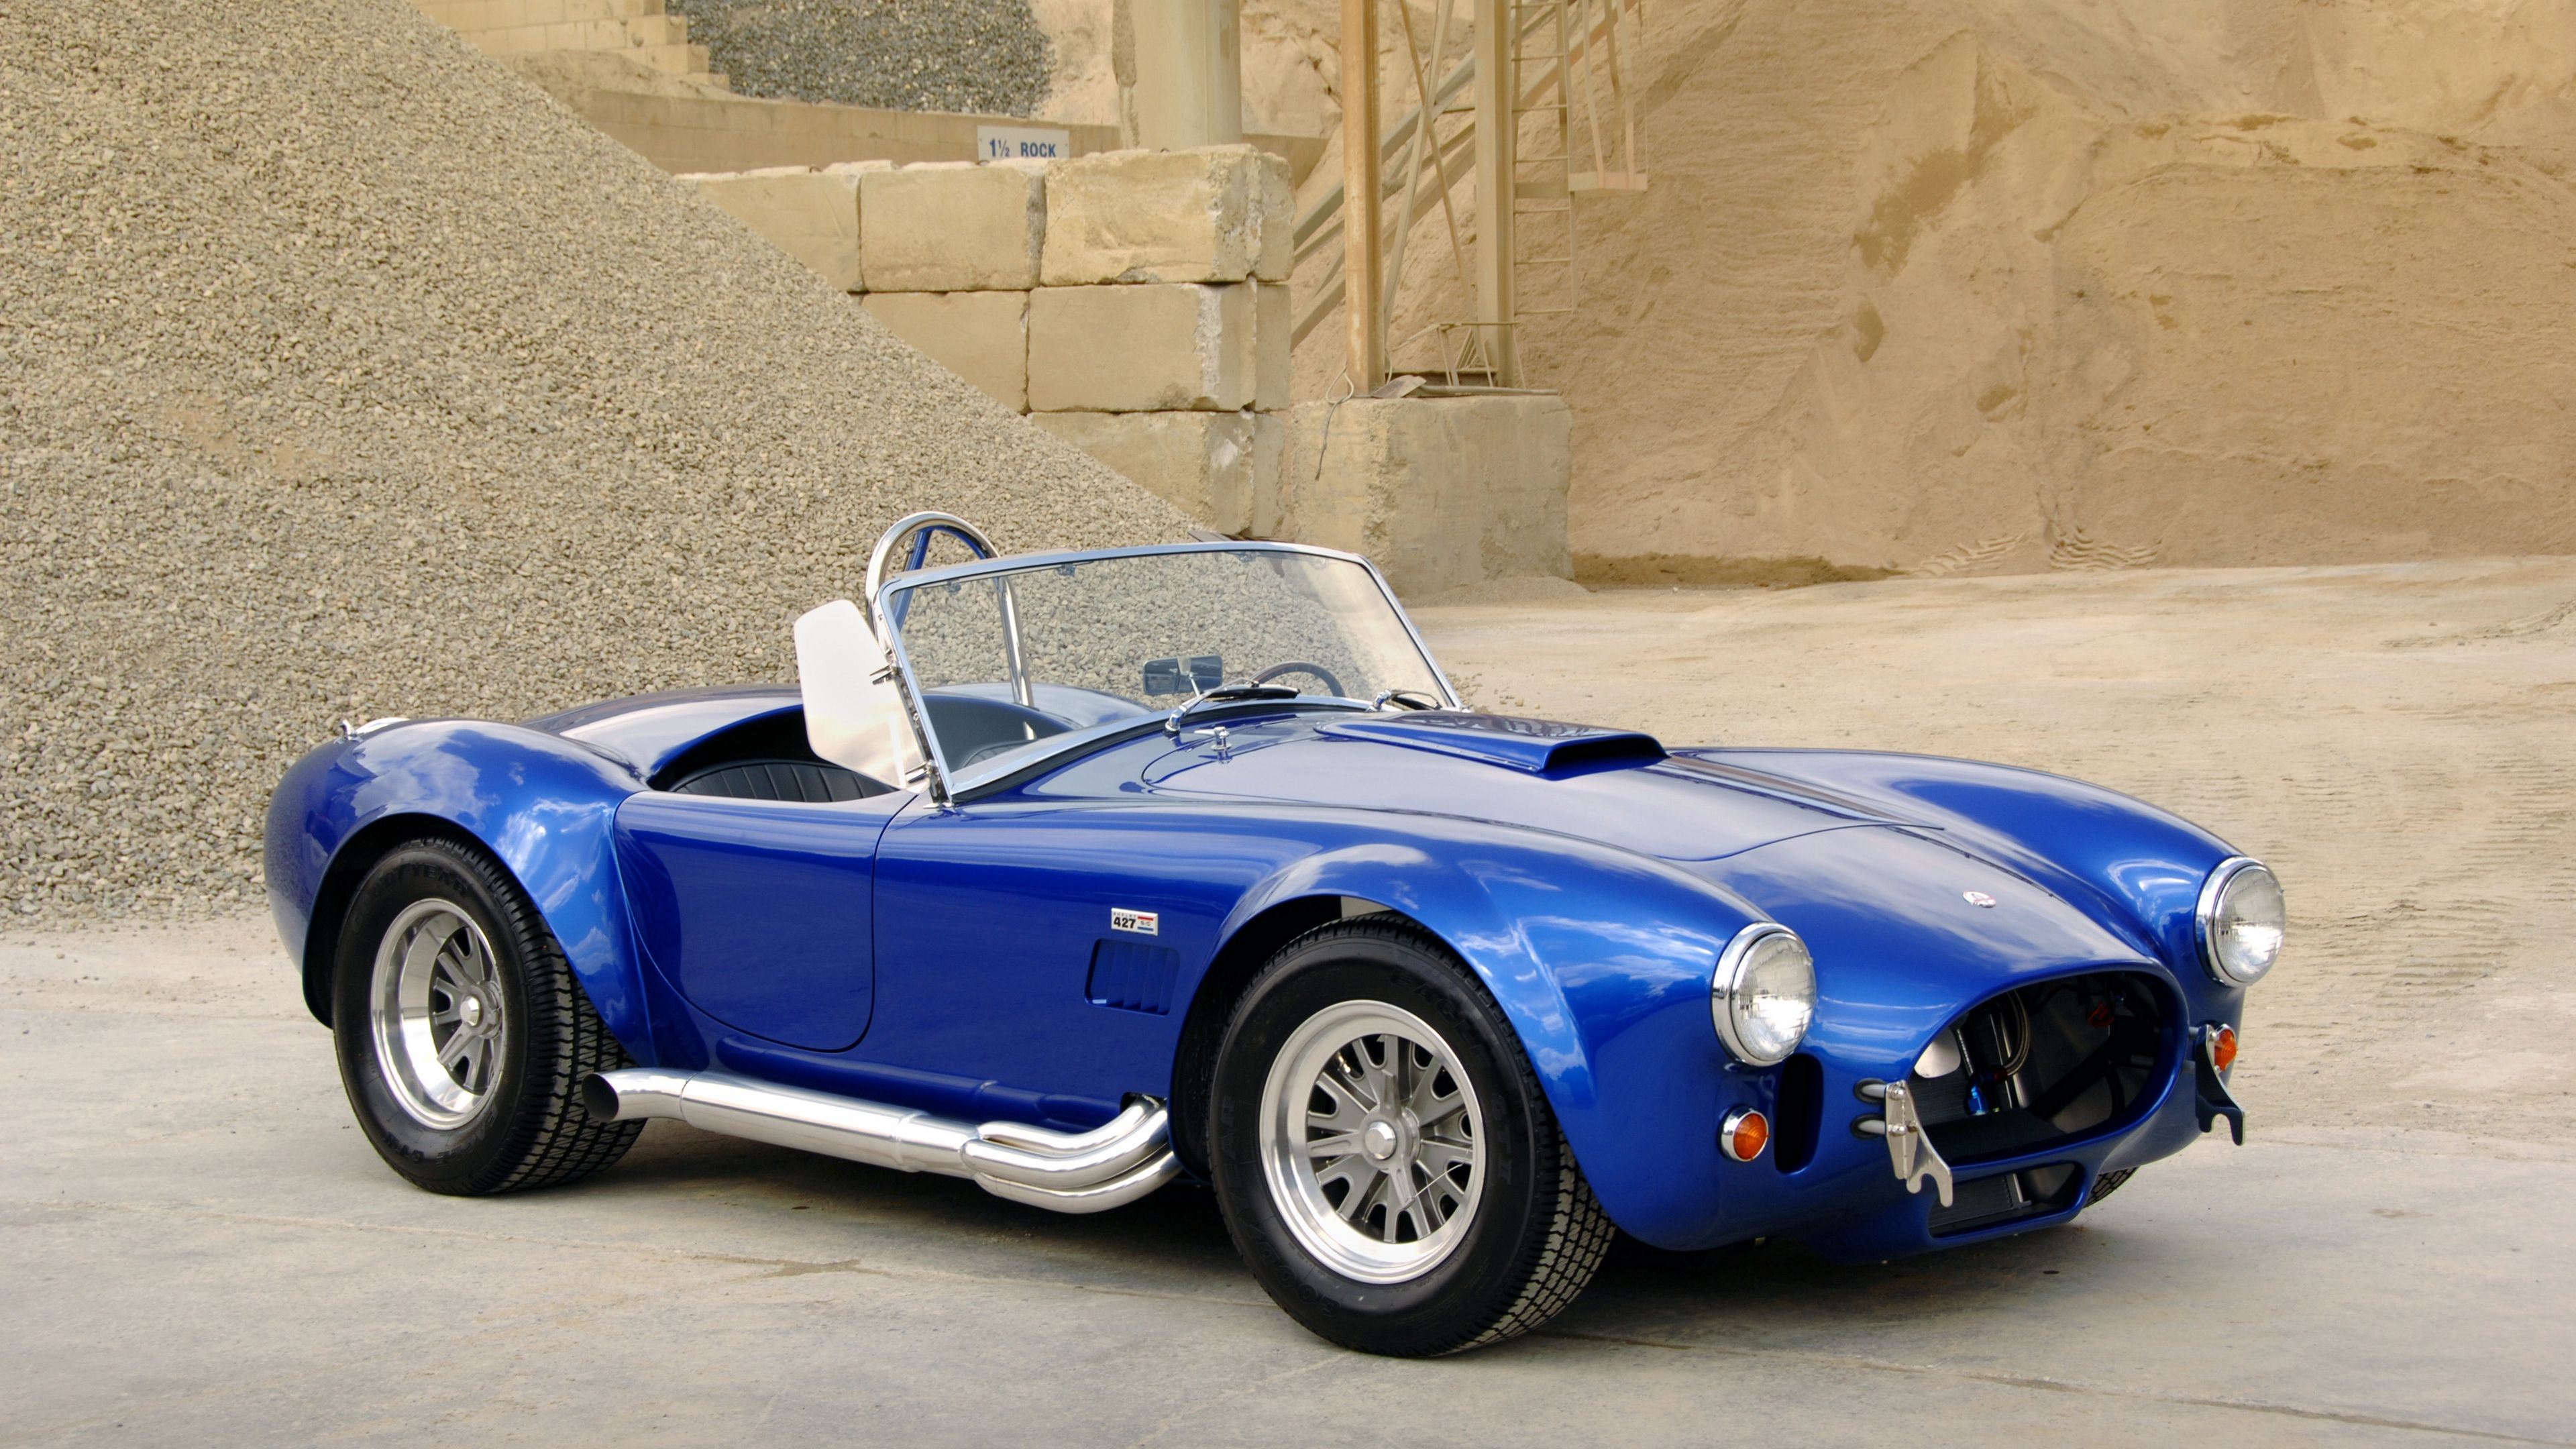 Wallpaper 4k Ford Shelby Cobra 427 1963 Csx 4000 4k Cobra Ford Shelby